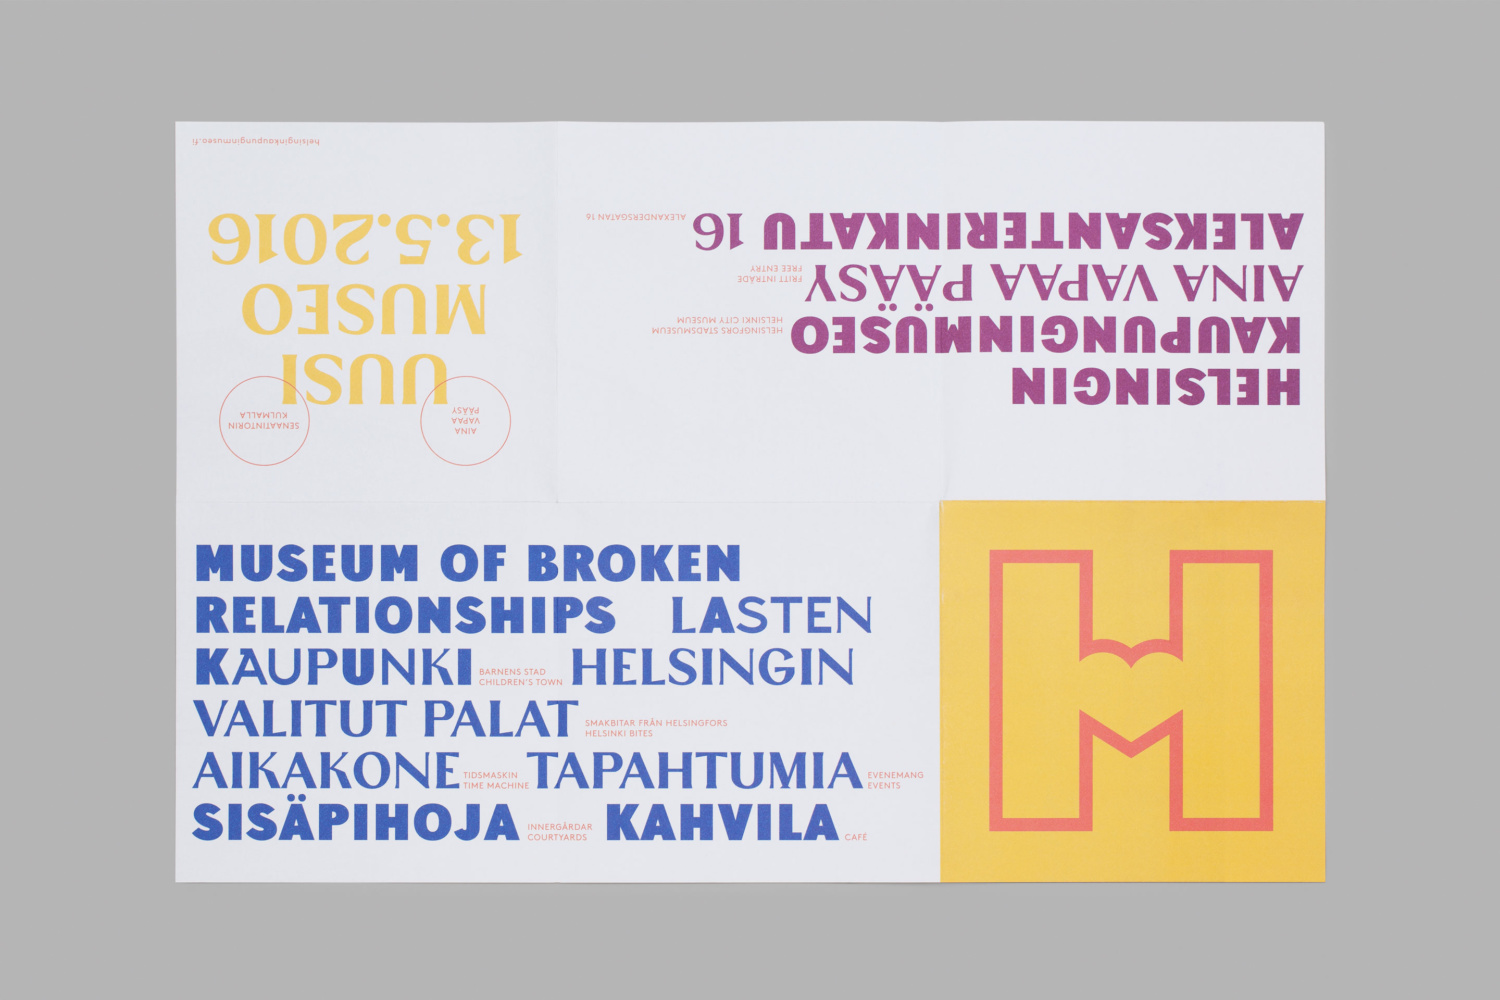 Brand identity, custom typography and print by Finnish graphic design studio Werklig for Helsinki City Museum